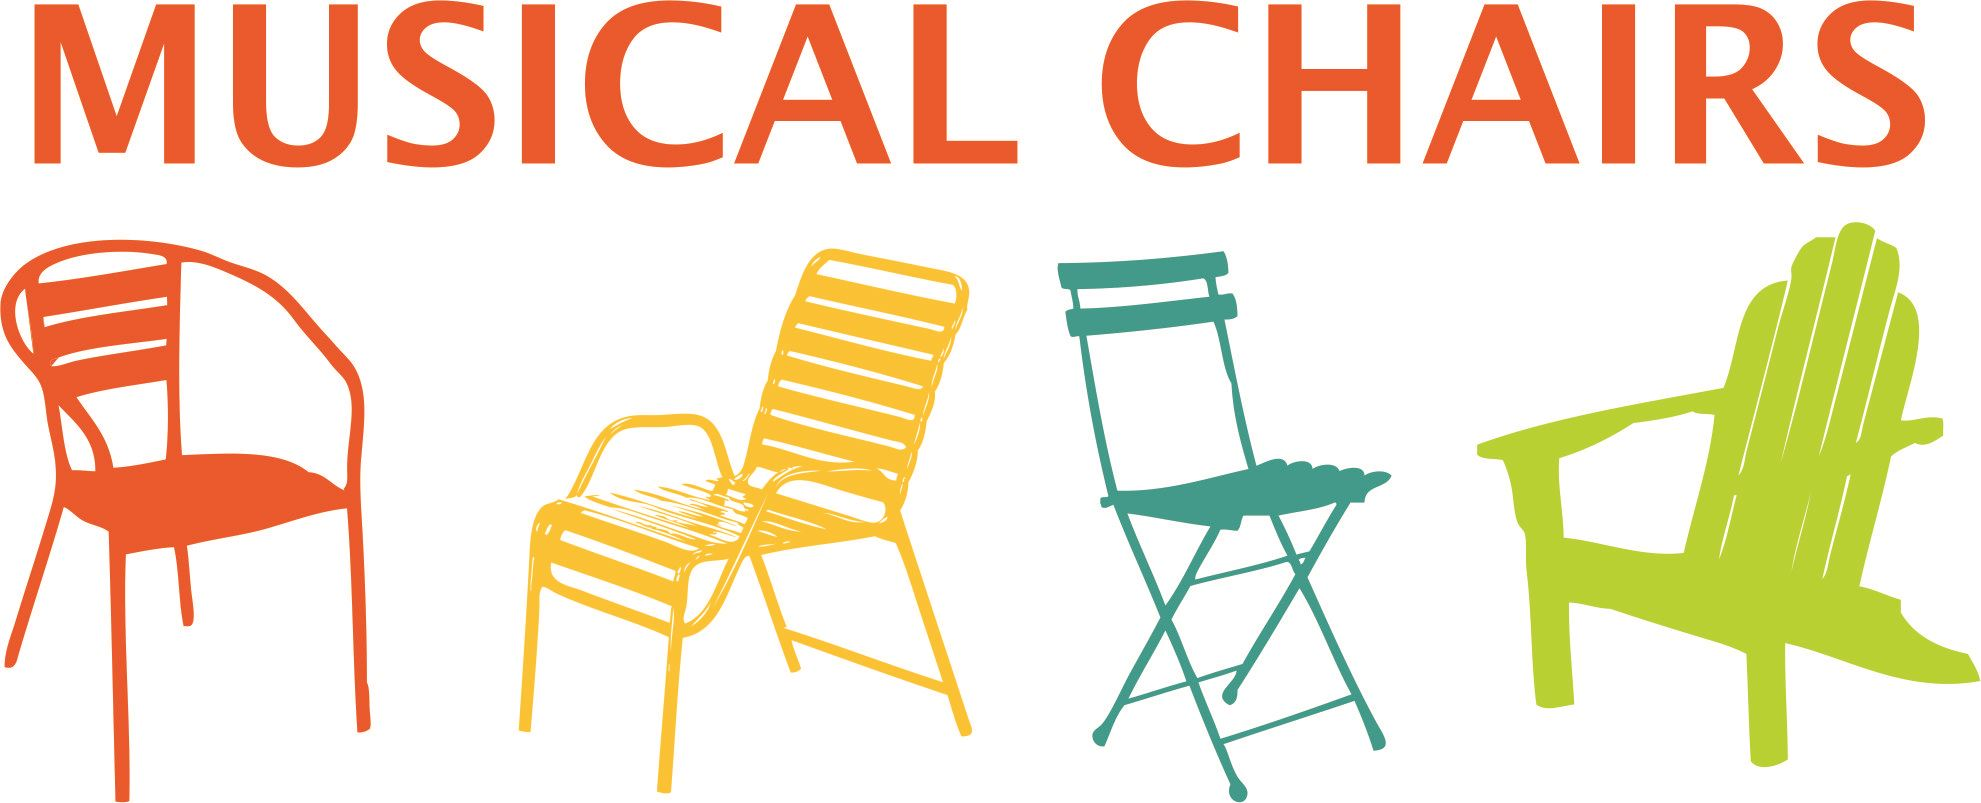 Musical Chairs logo